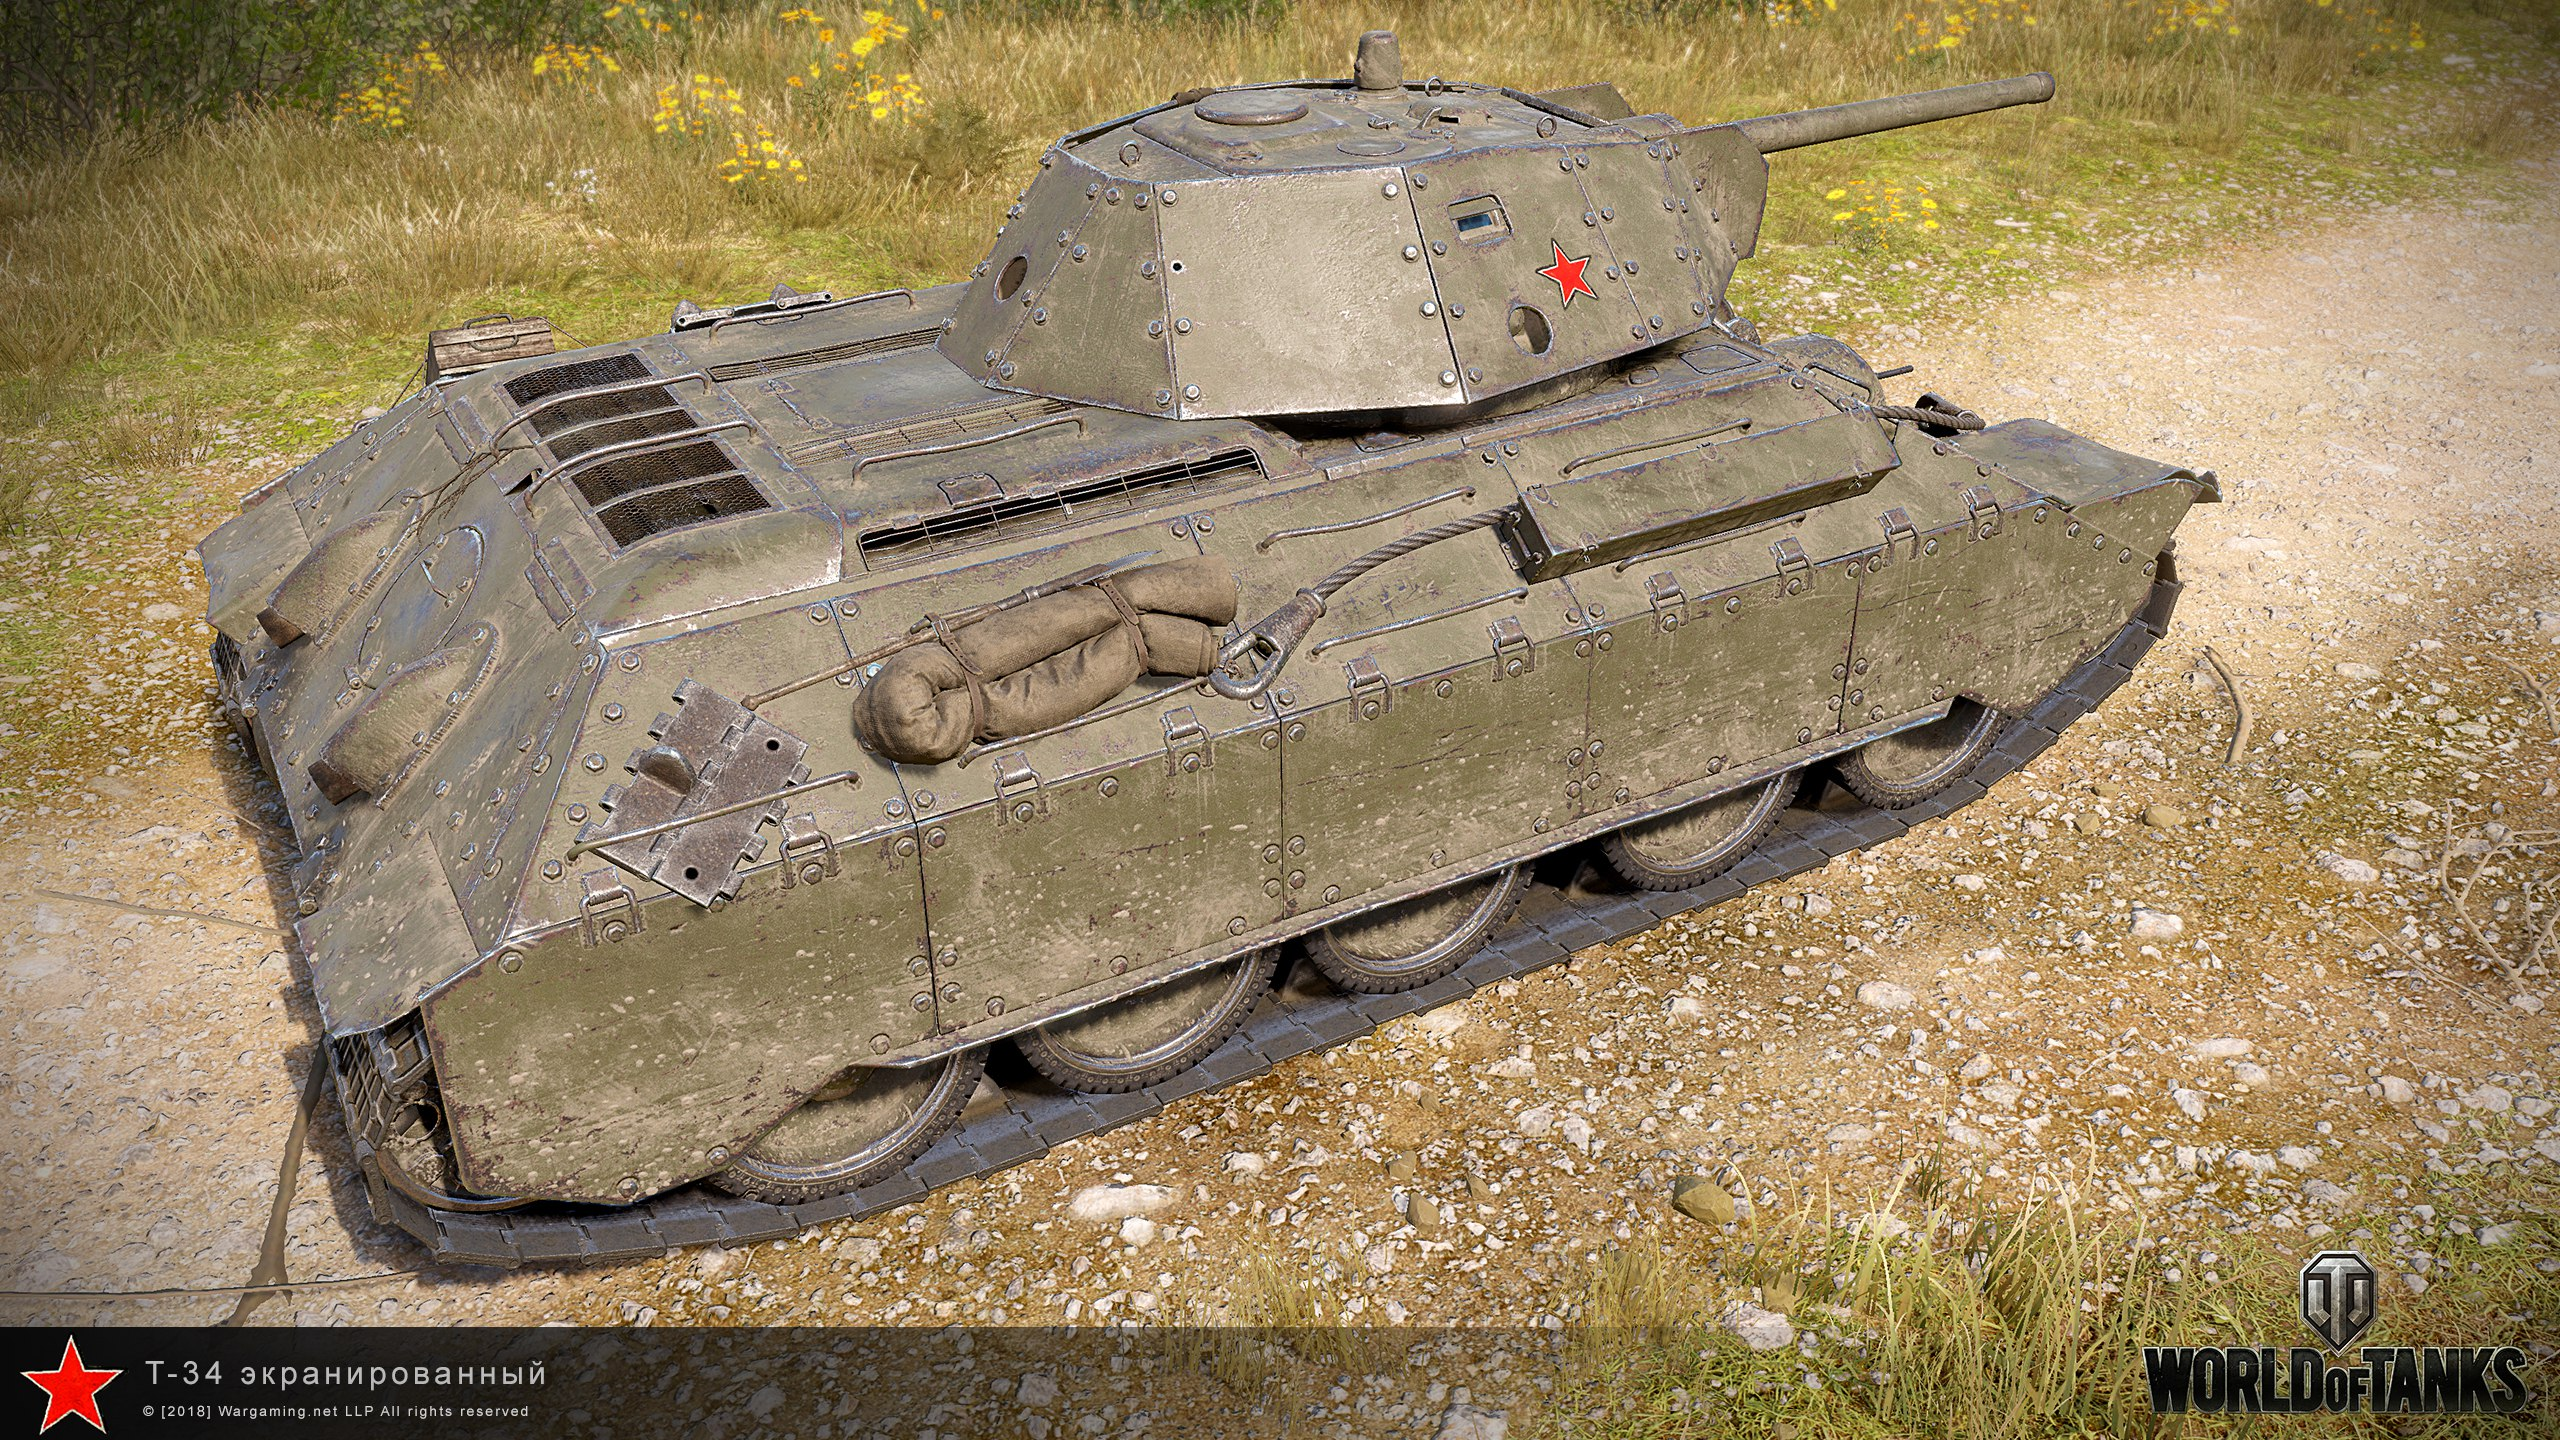 world of tanks 1.0 release date